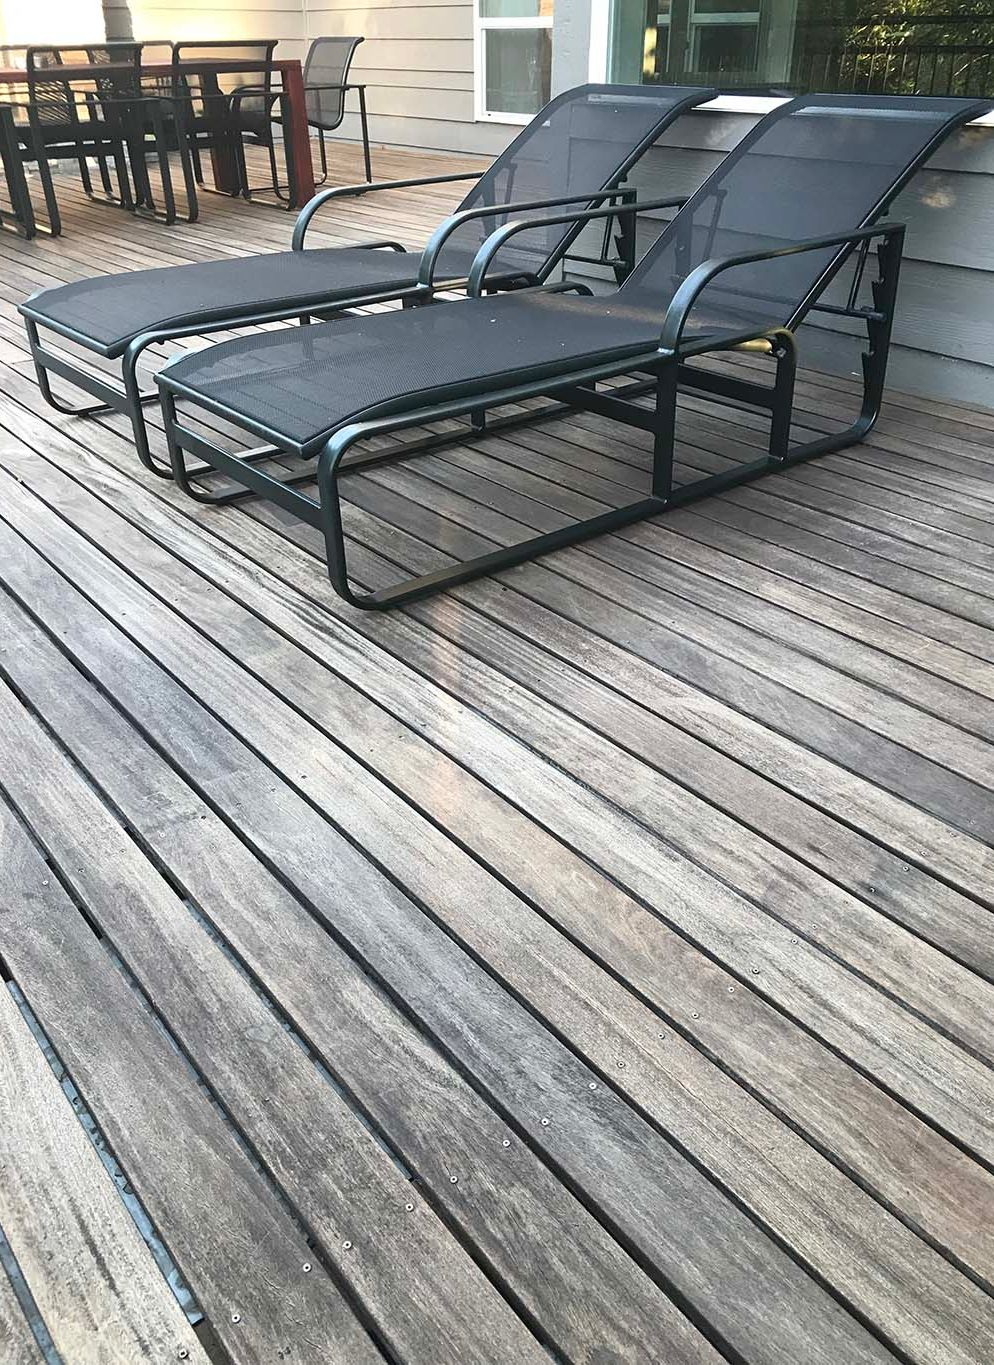 Aged Cumaru Brazilian Teak Deck Can Be Brought Back To Life By Using A Penetrative Hardwood Oil Cumaru Decking Hardwood Decking Deck Design